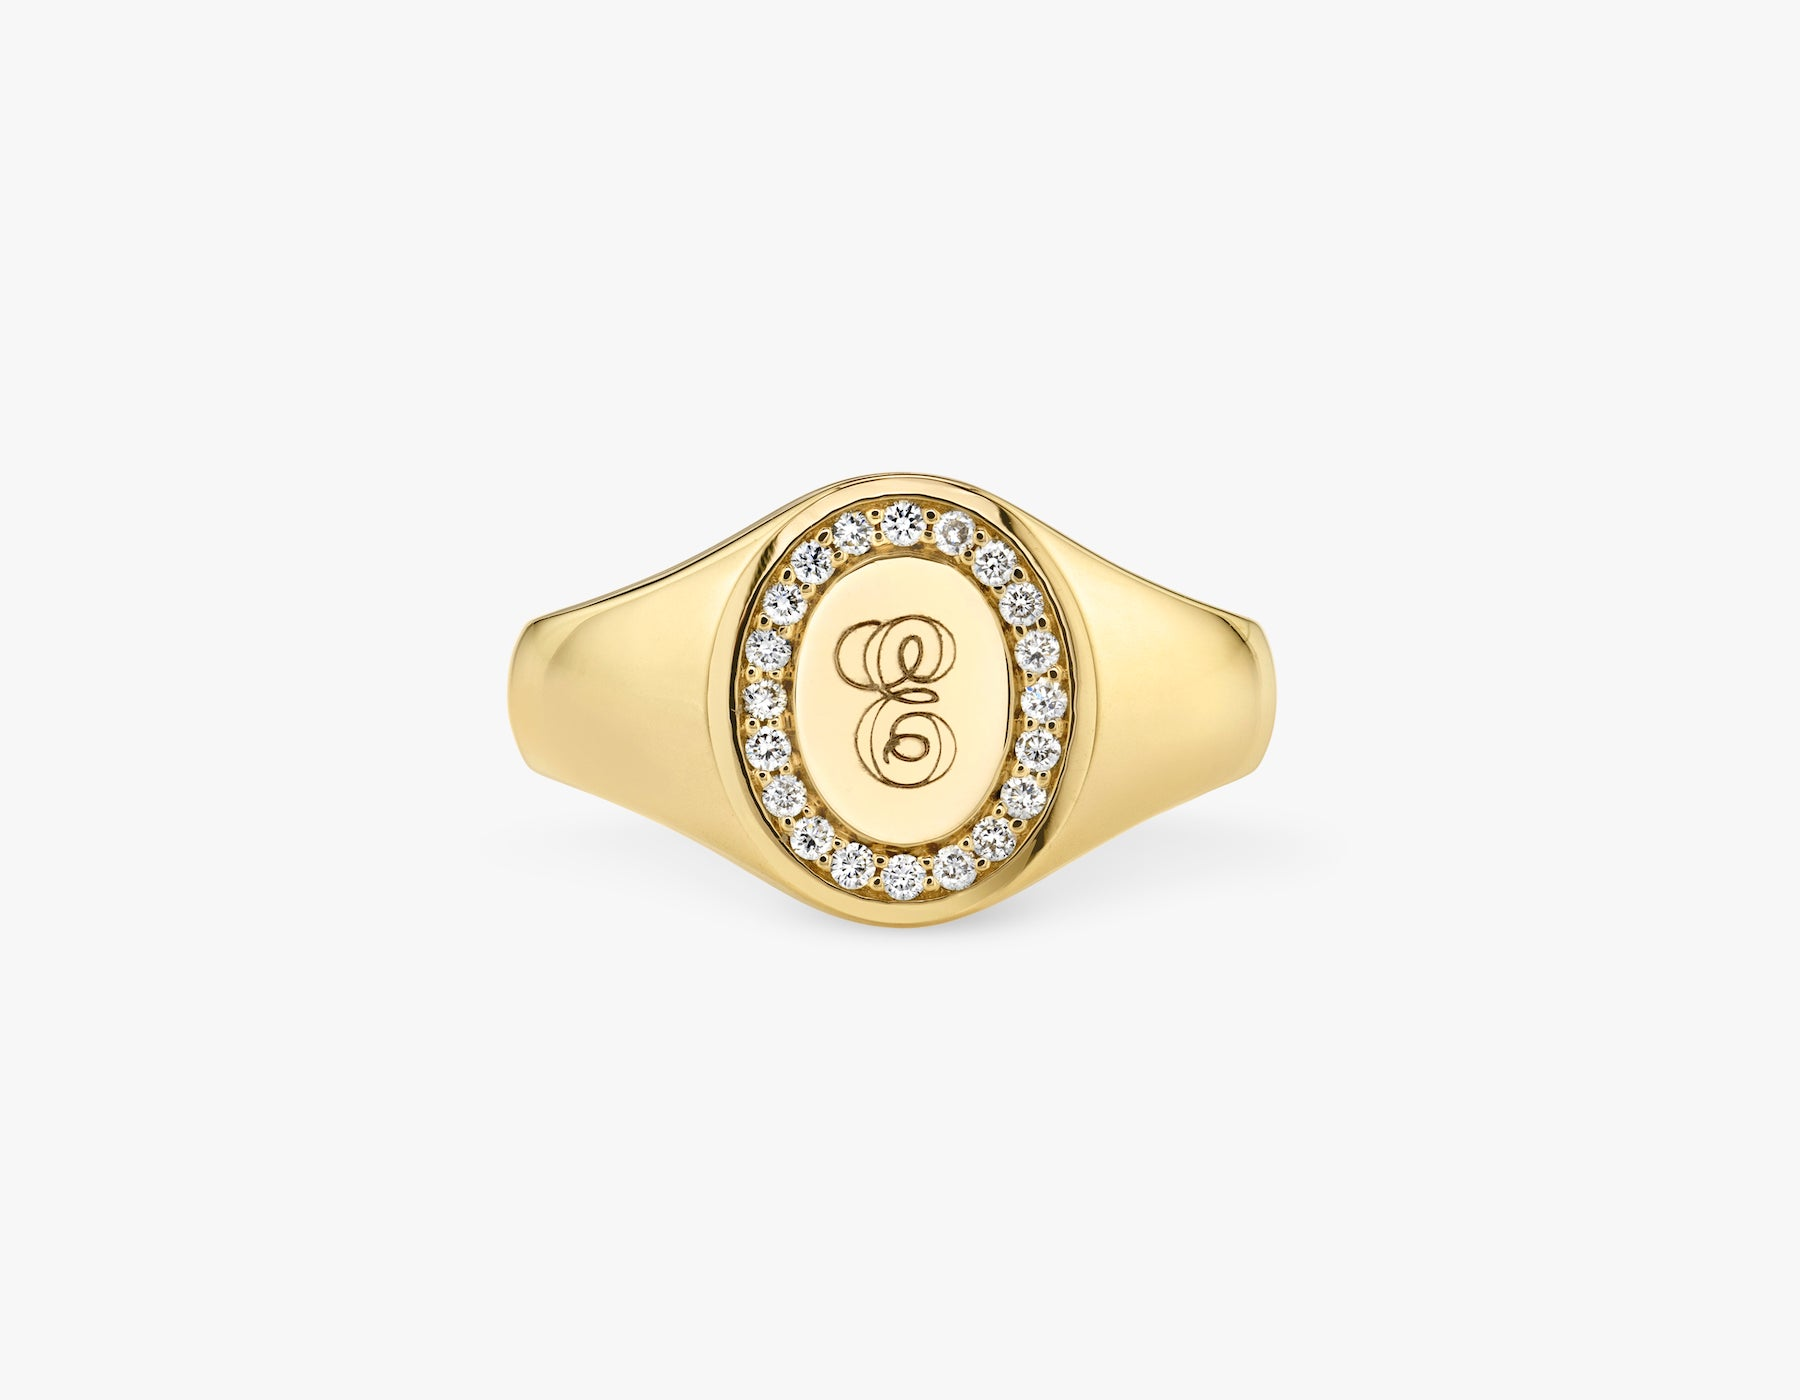 Vrai 14k solid gold classic customizable engraved Pave Signet Ring, 14K Yellow Gold